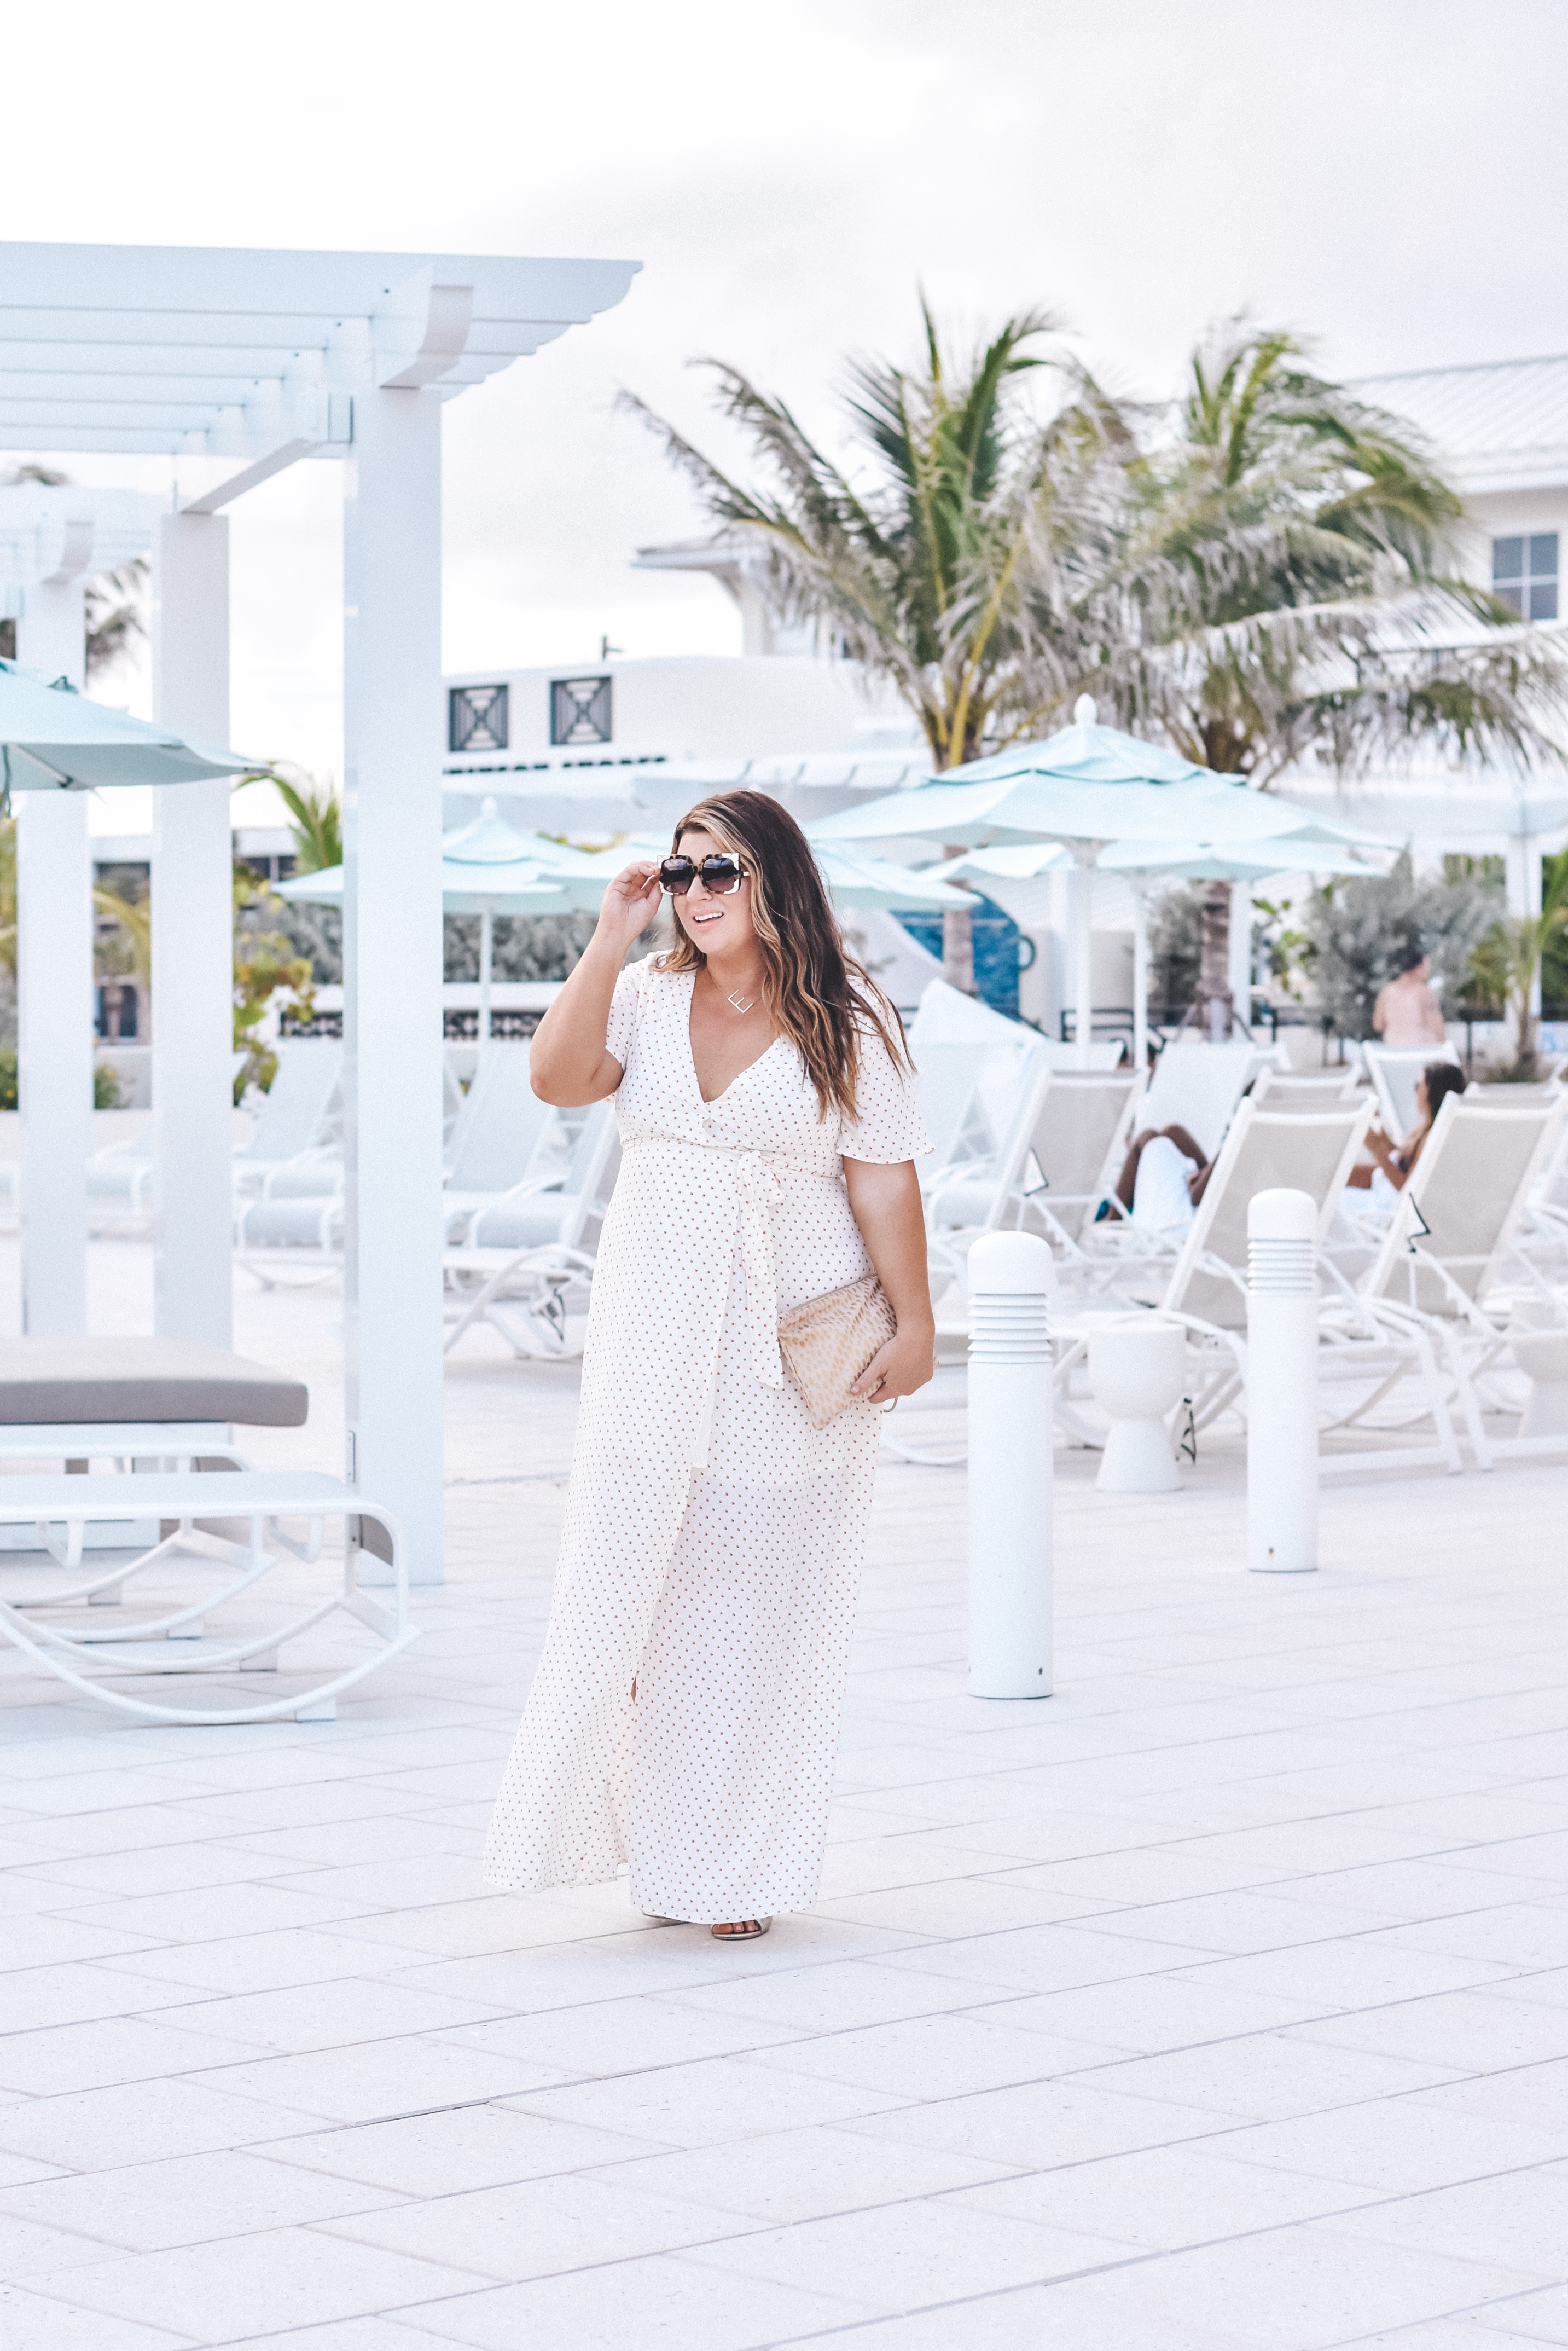 Hutchinson Shores - 30A Mama Travel - Resort Style - Beach Maxi Dress - Erika Powell Clutch